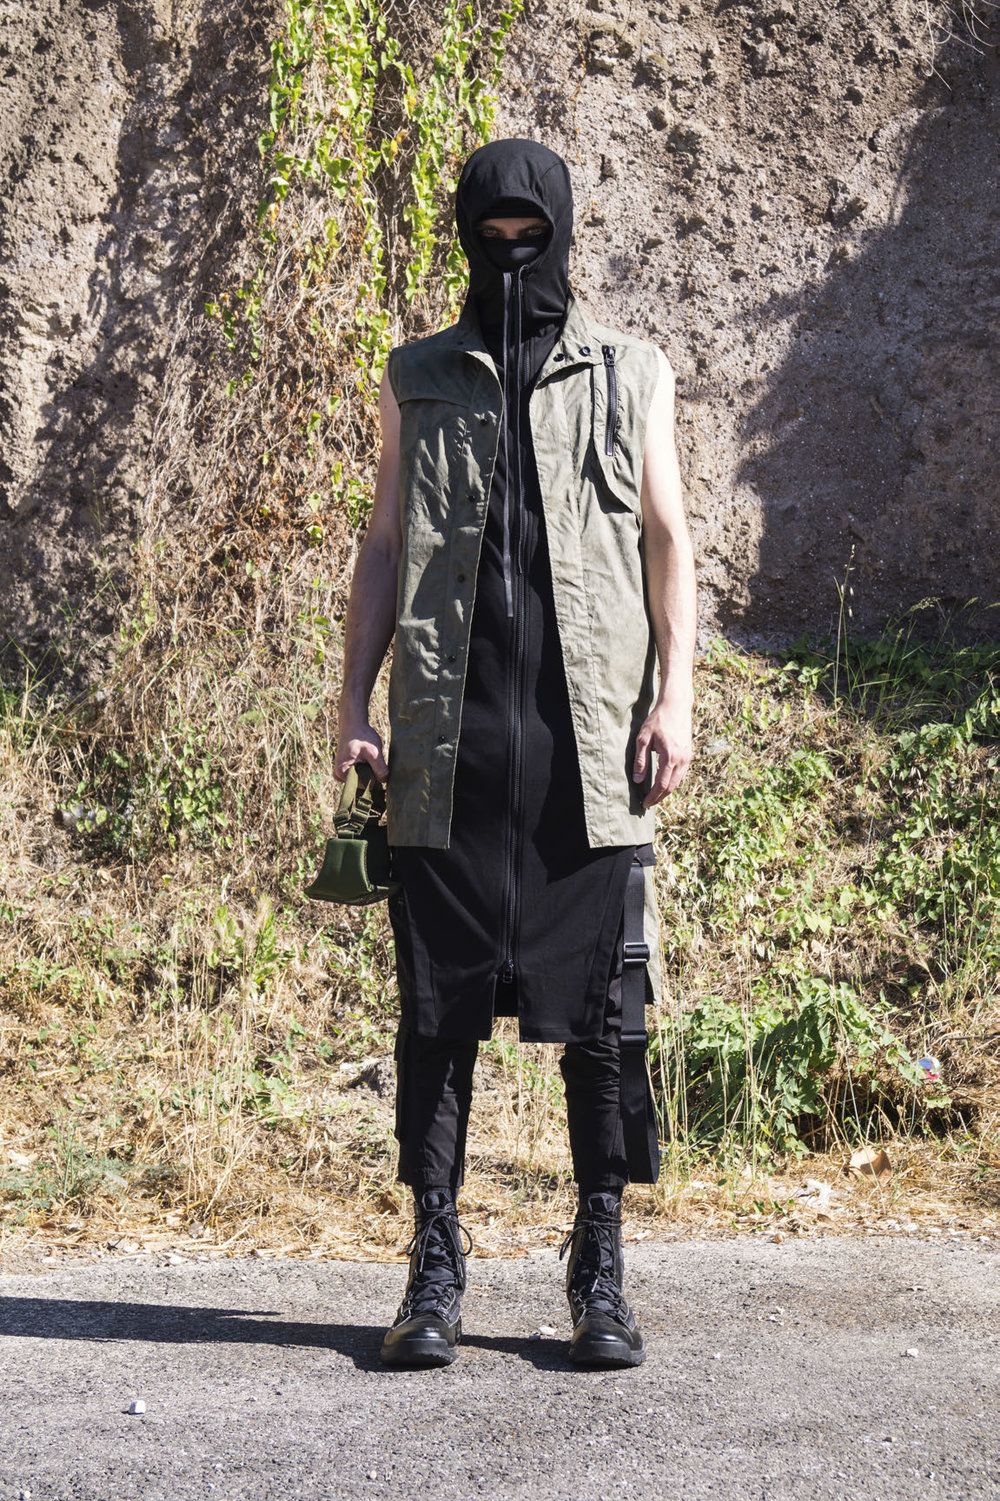 GALLSS18_UNBORNSURVIVAL_LOOKBOOK_MANRED (3)_Page_28.jpg